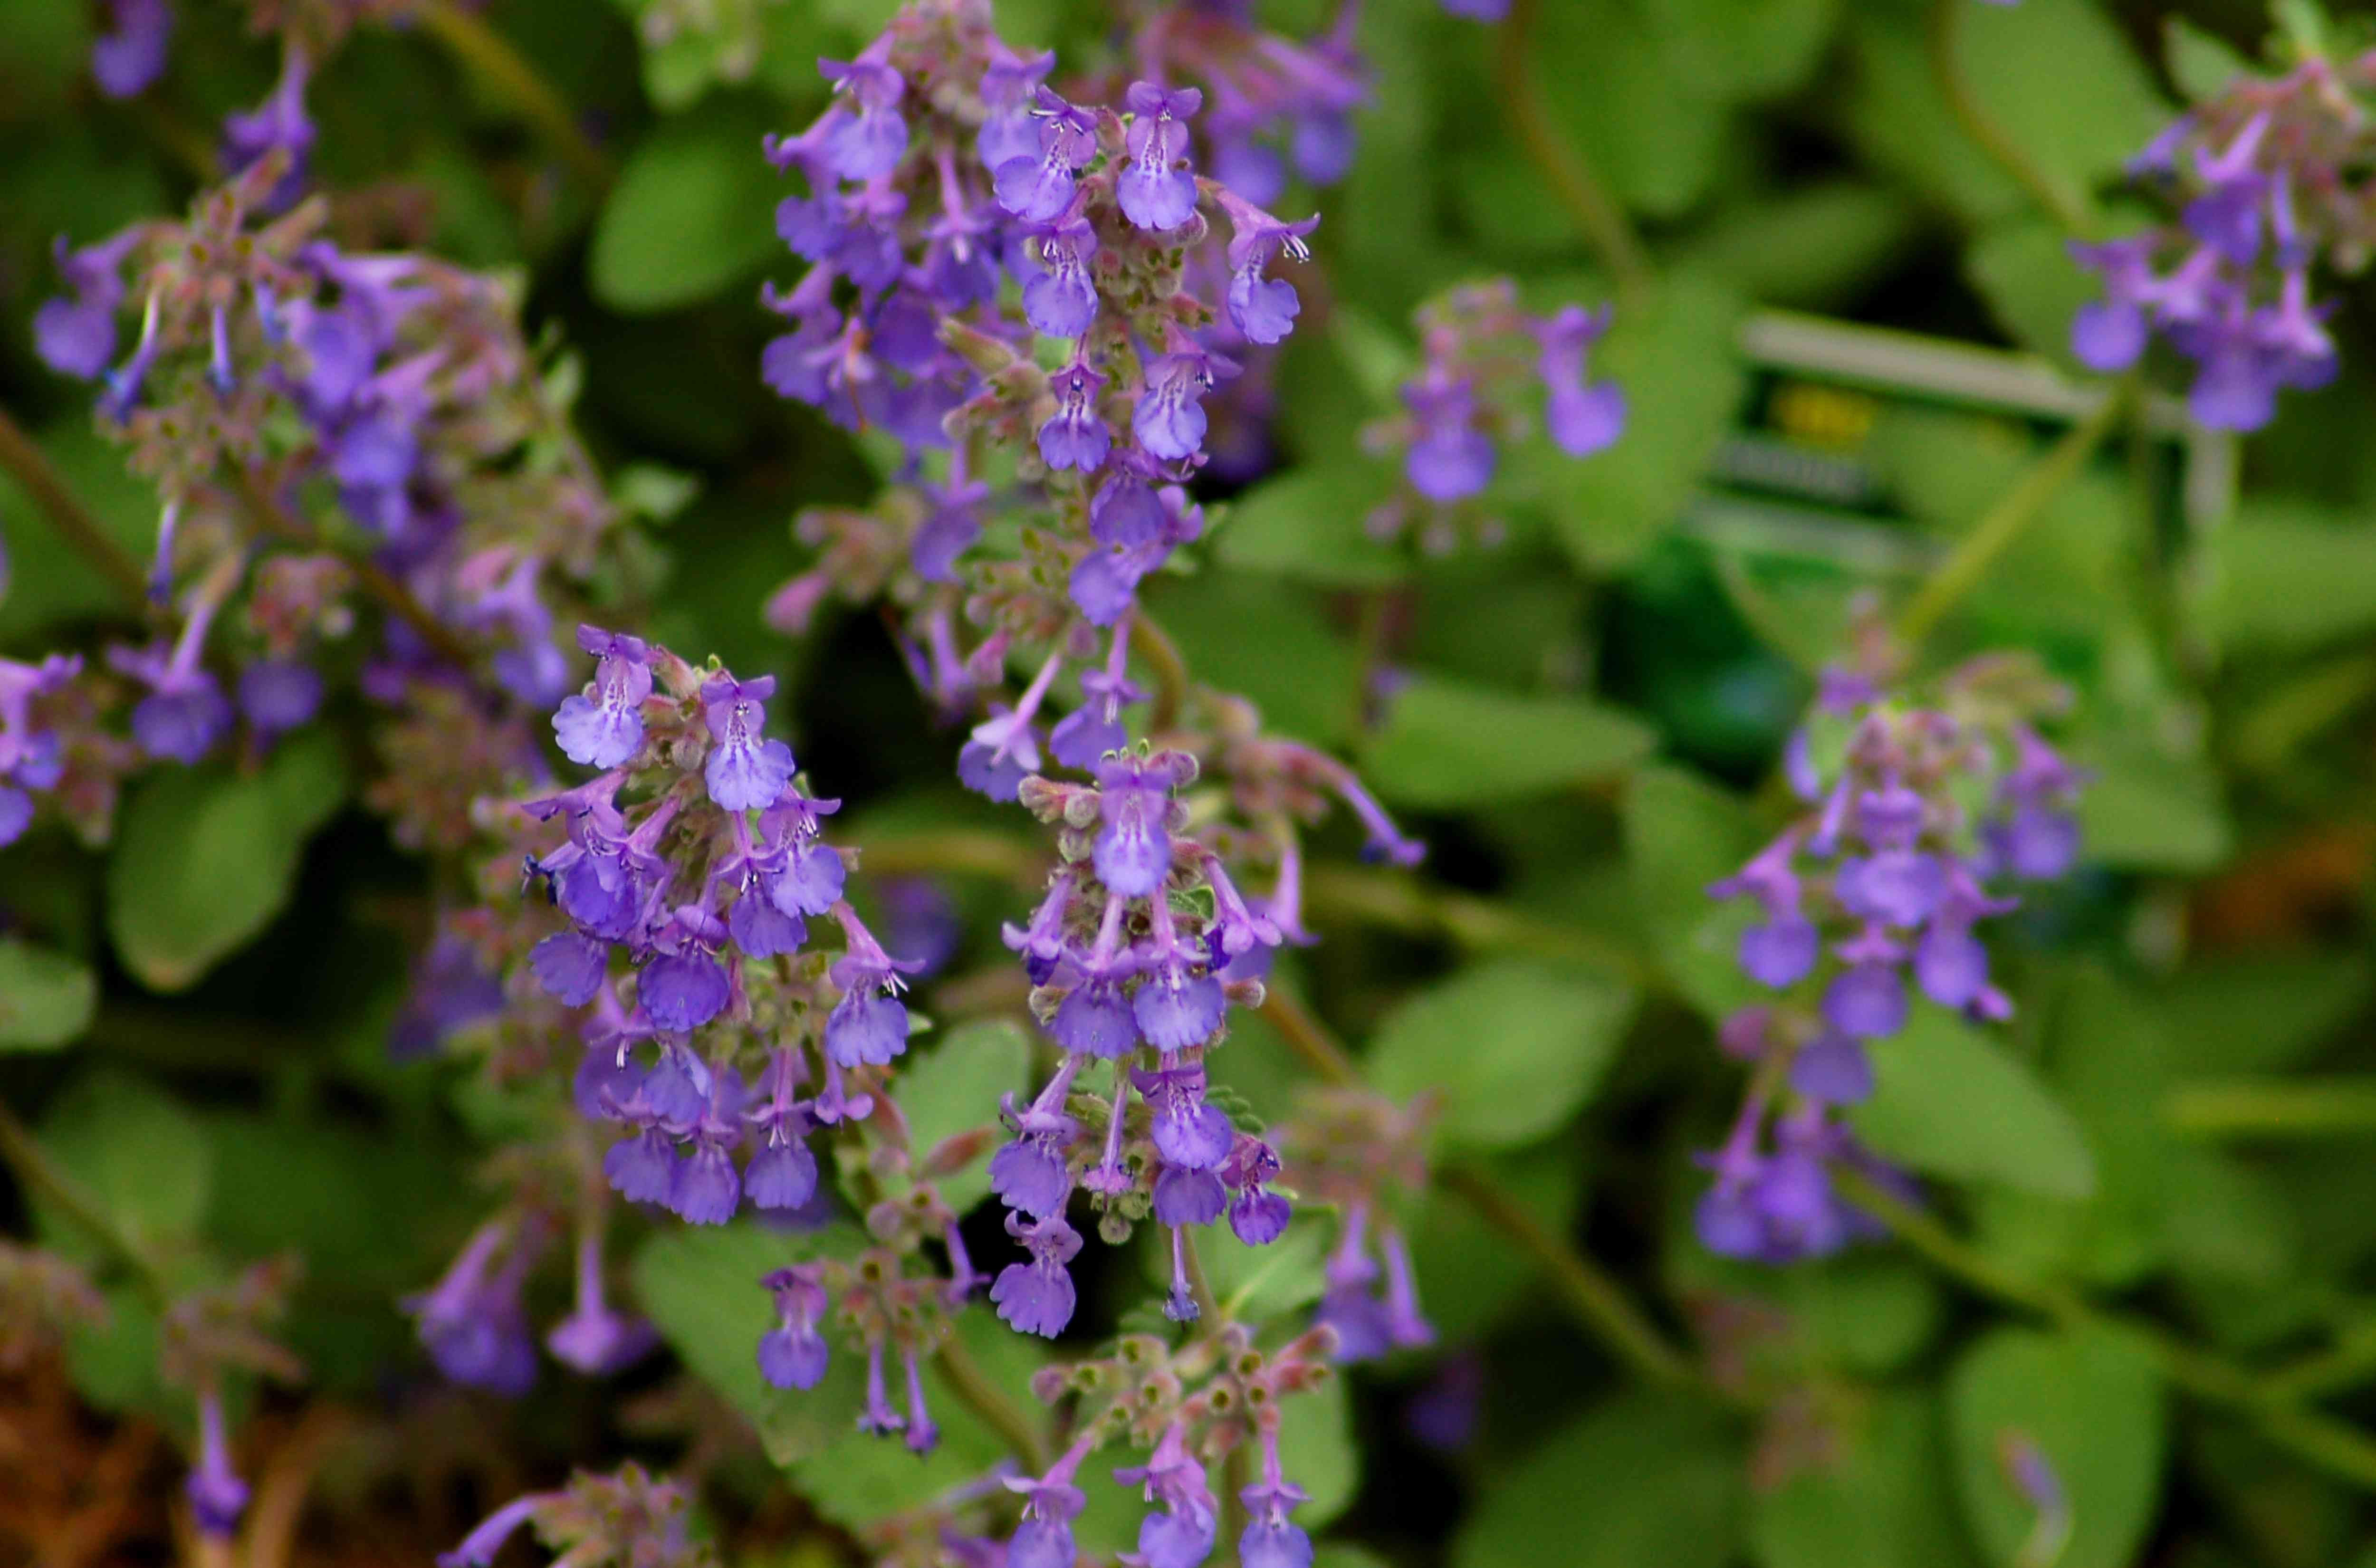 Little Titch catmint (image) is compact (compared to 6 Hills Giant, say). It has lavender blooms.